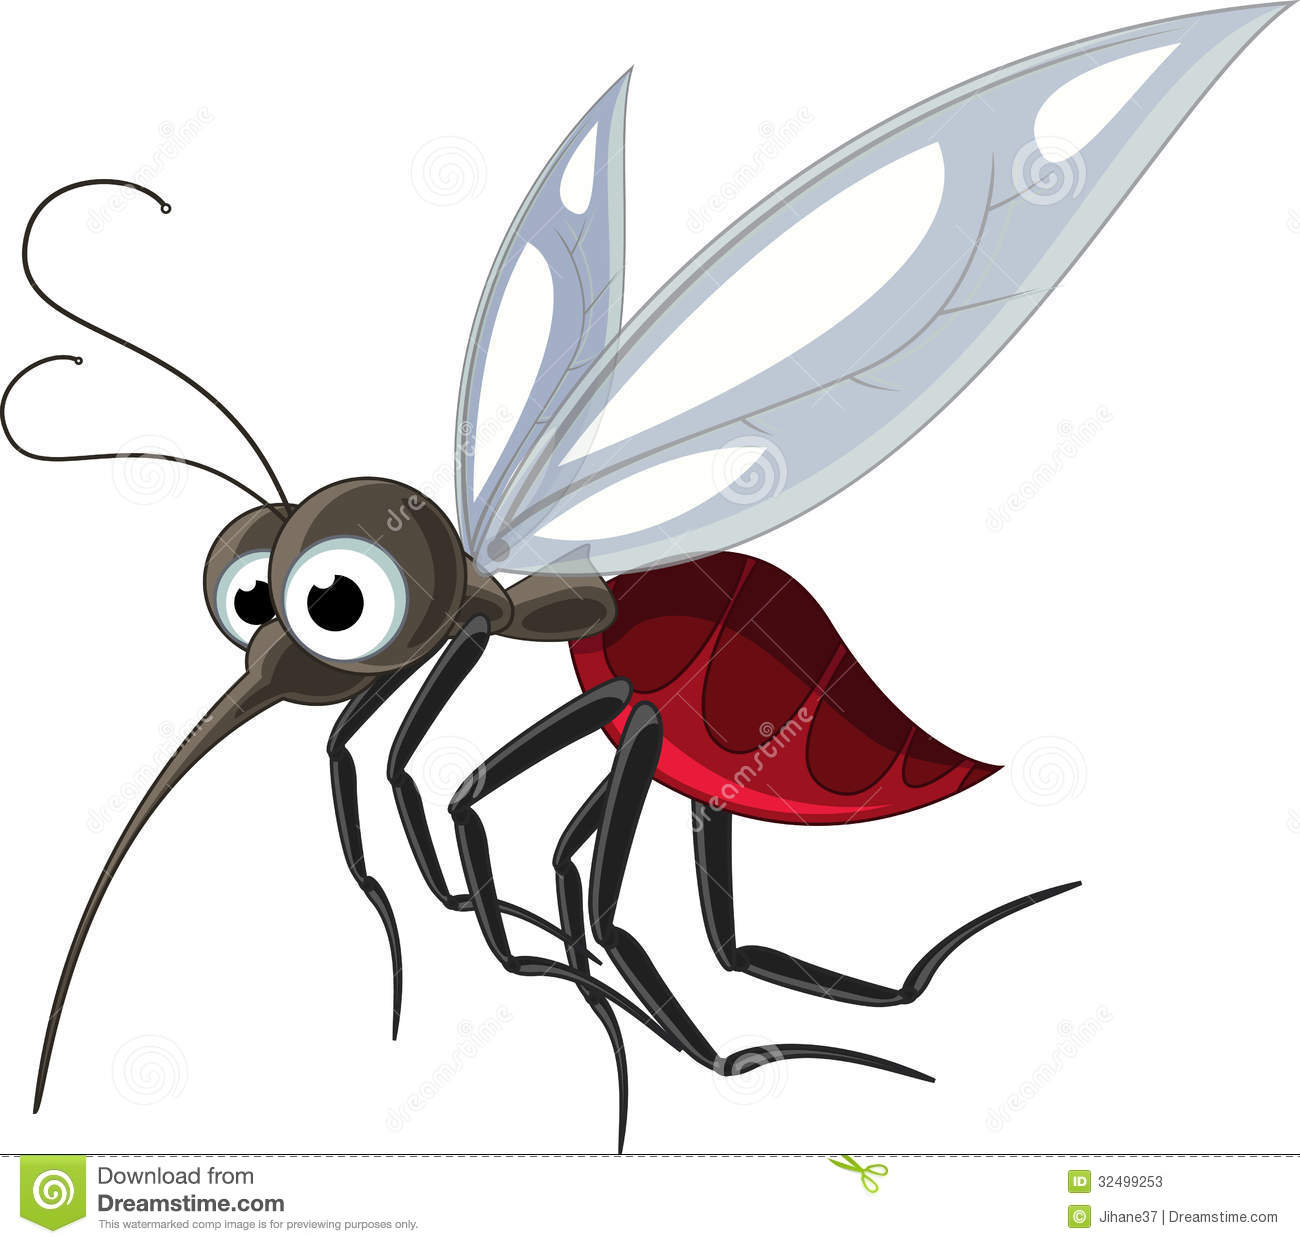 Mosquito Cartoon For You Design Stock Photos - Image: 32499253